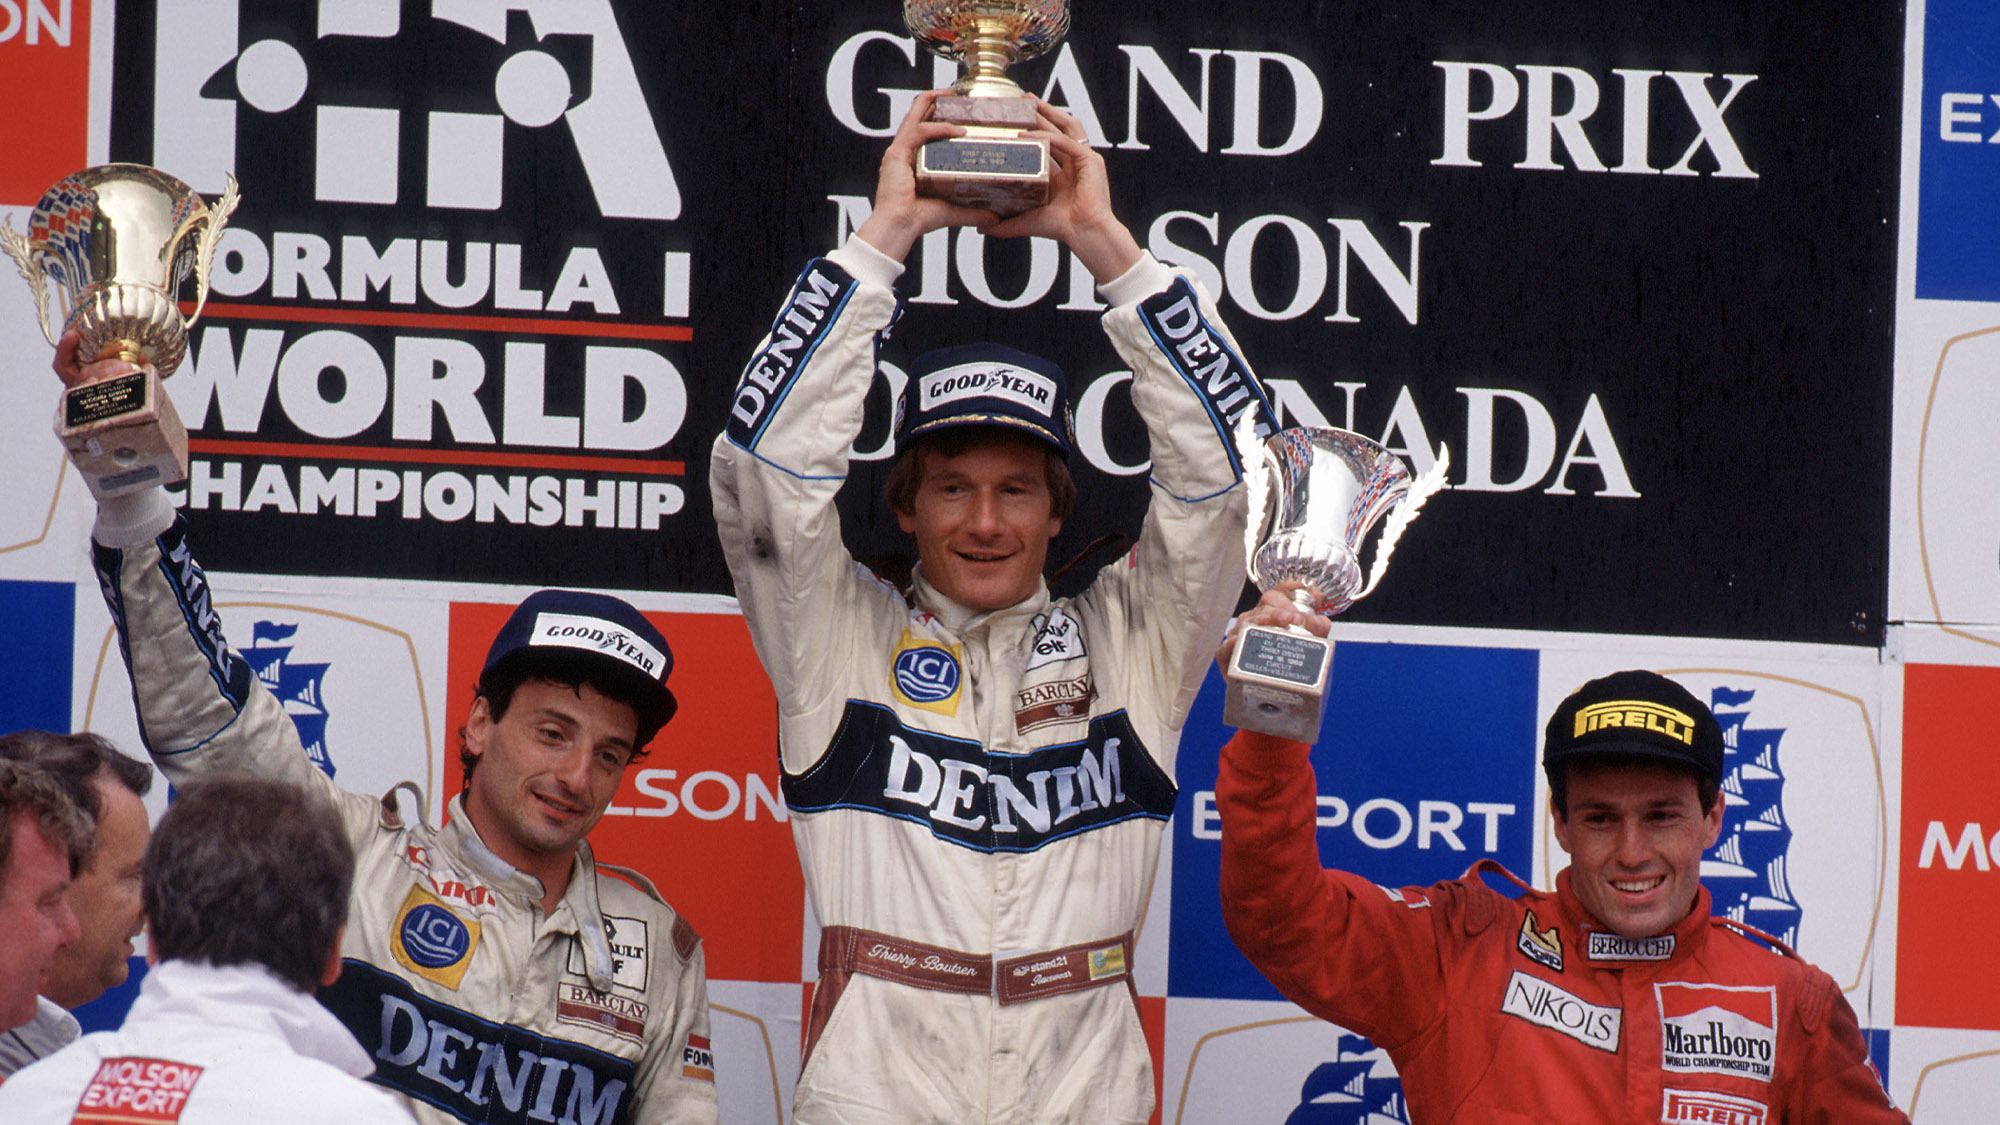 Thierry Boutsen on the podium alongside Ricardo Patrese and Andrea de Cesaris after winning the 1989 Canadian Grand Prix at Montreal